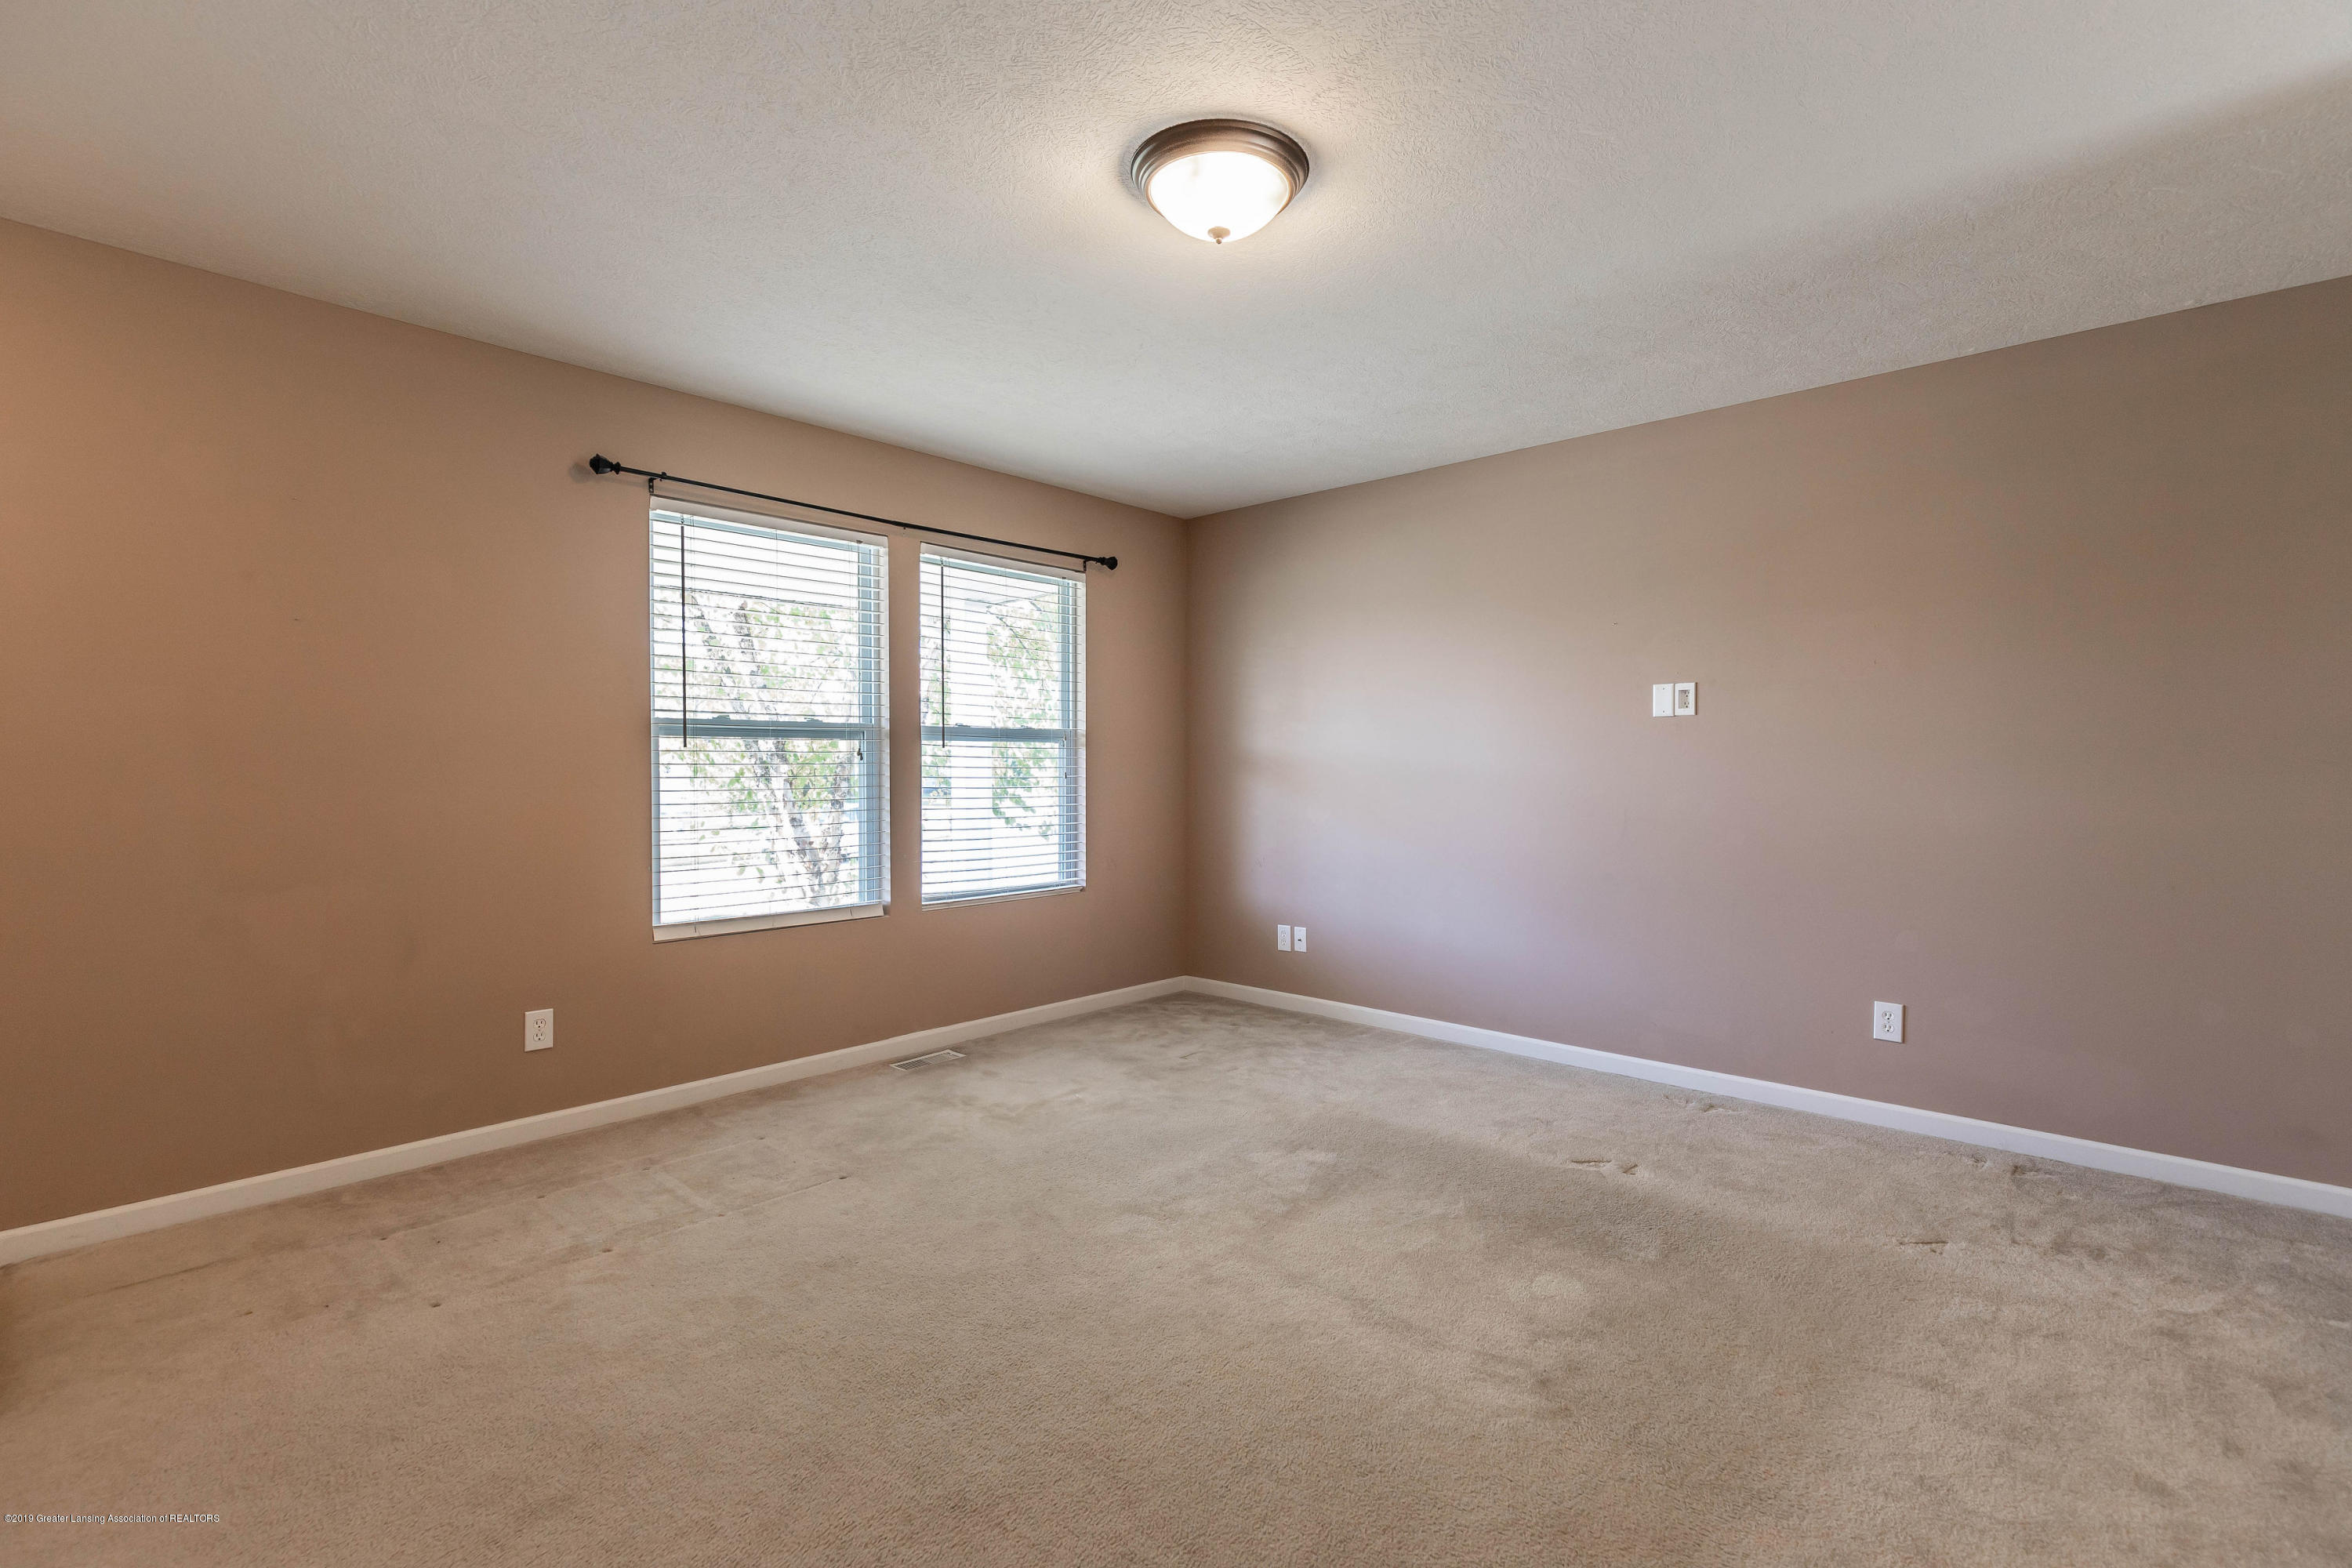 15125 Loxley Ln - loxleyliving2(1of1) - 4